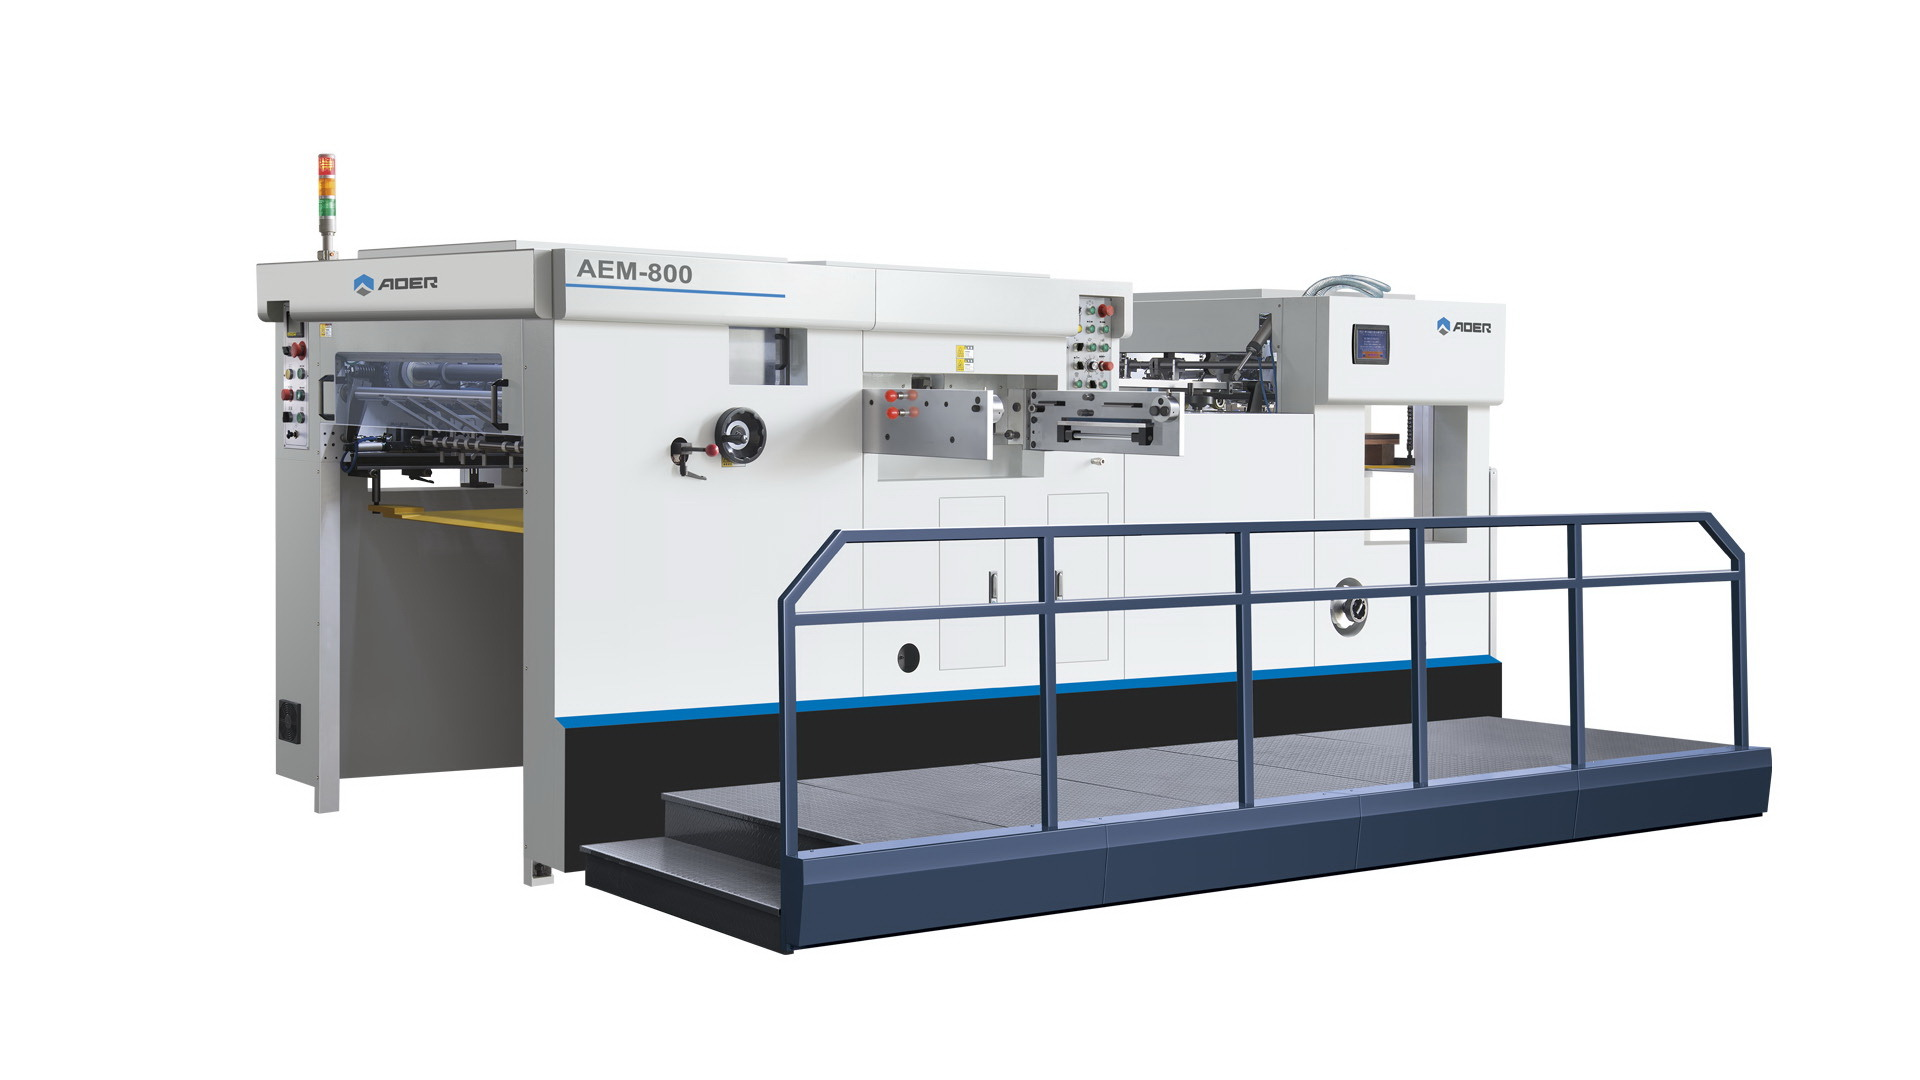 AEM-800 Corrugated Paper Cardboard Automatic Die Cutting Machine